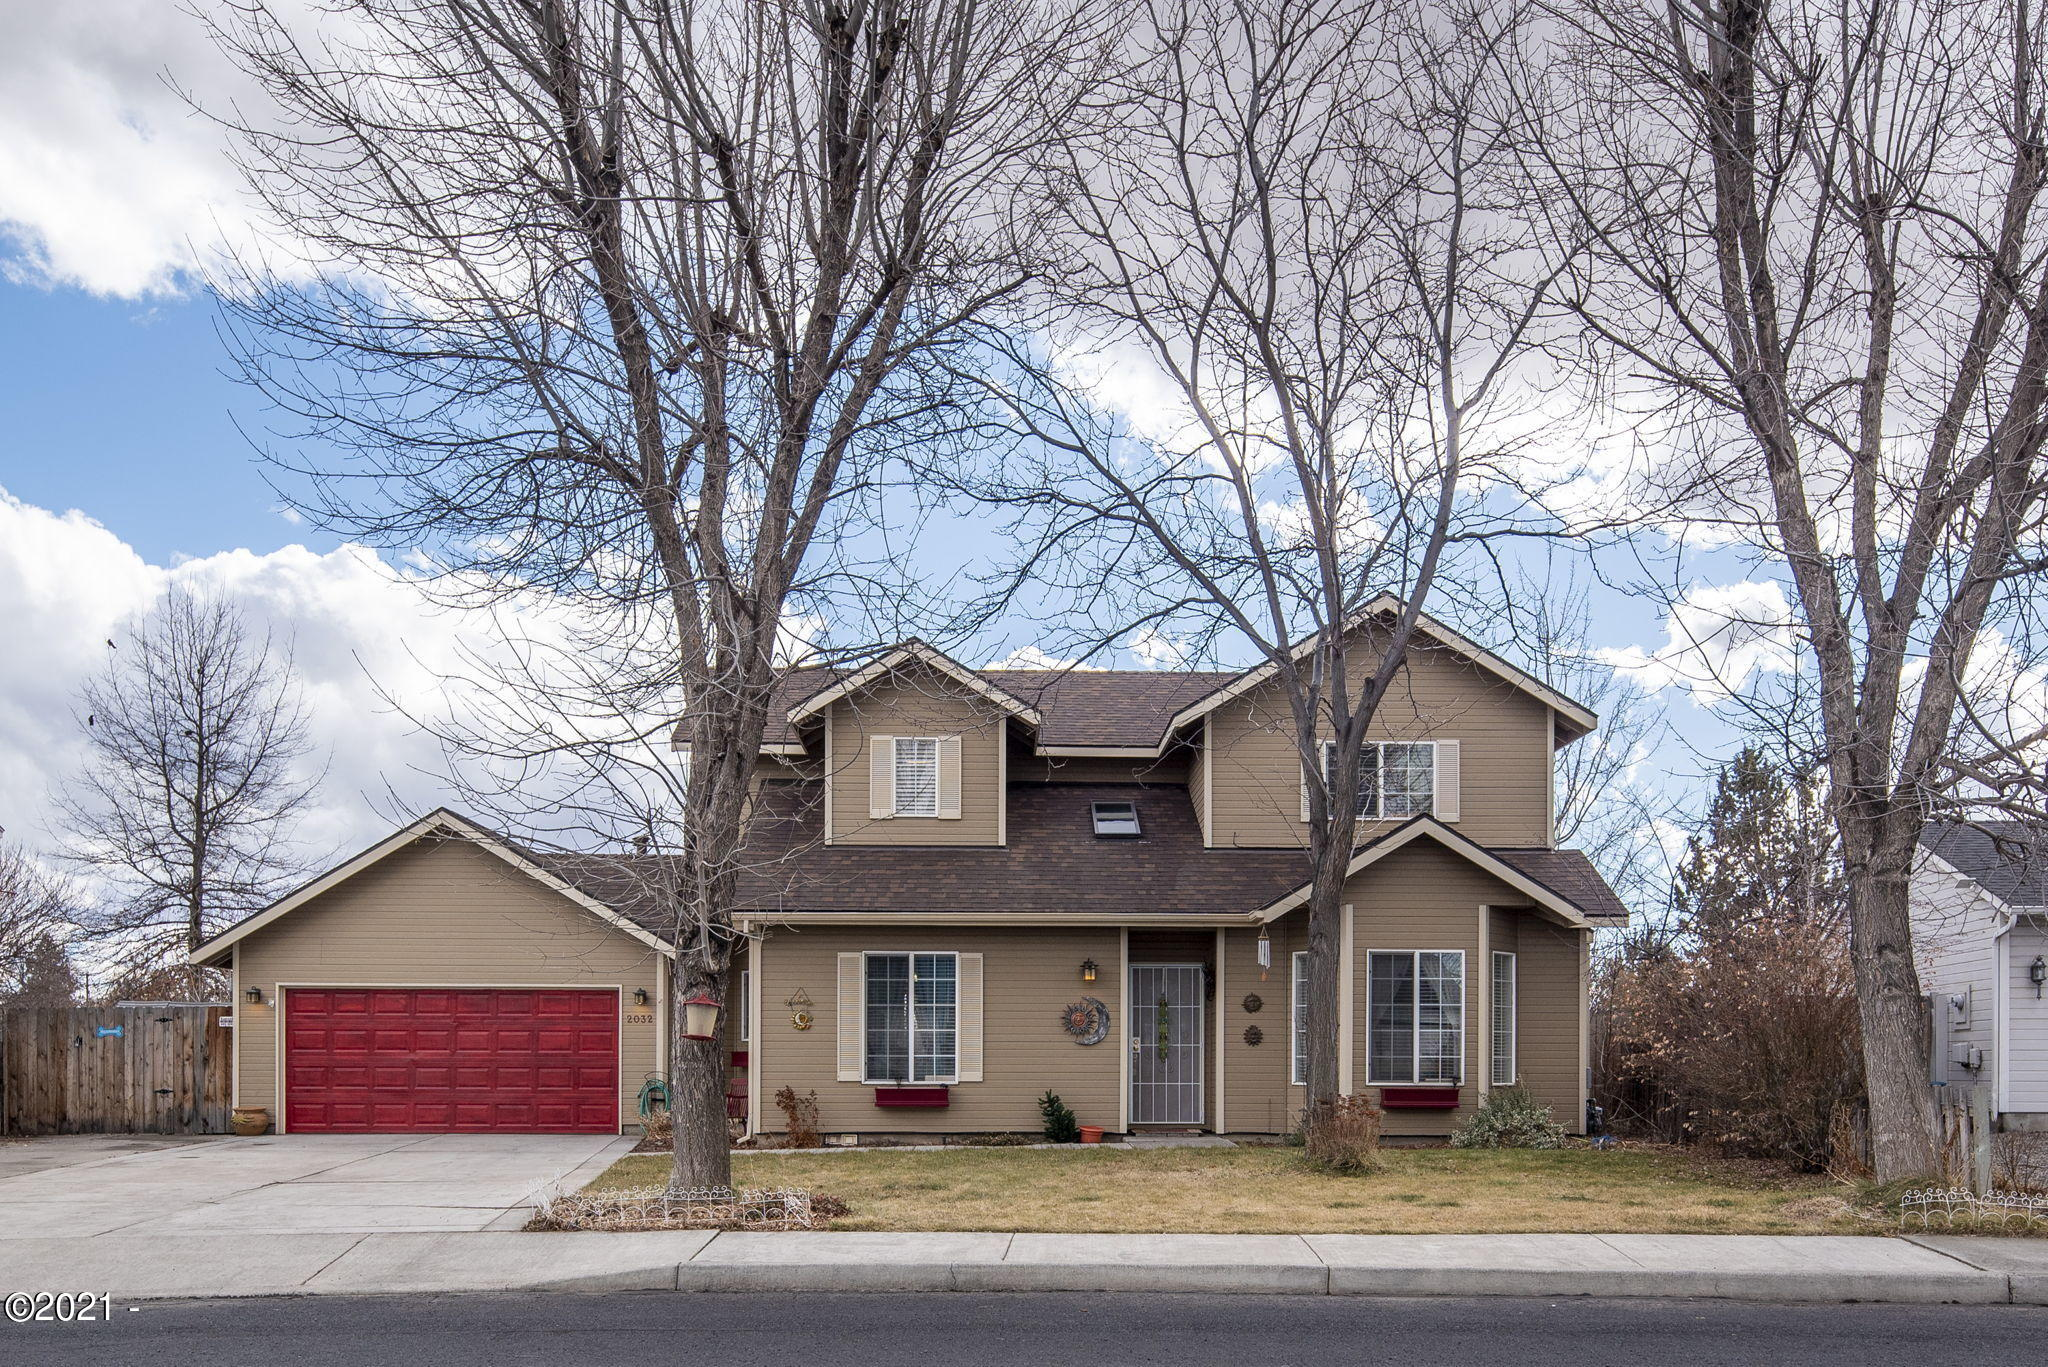 2032 NW Greenwood Pl, Redmond, OR 97756 - 1-web-or-mls-2032 NW Greenwood Place-1